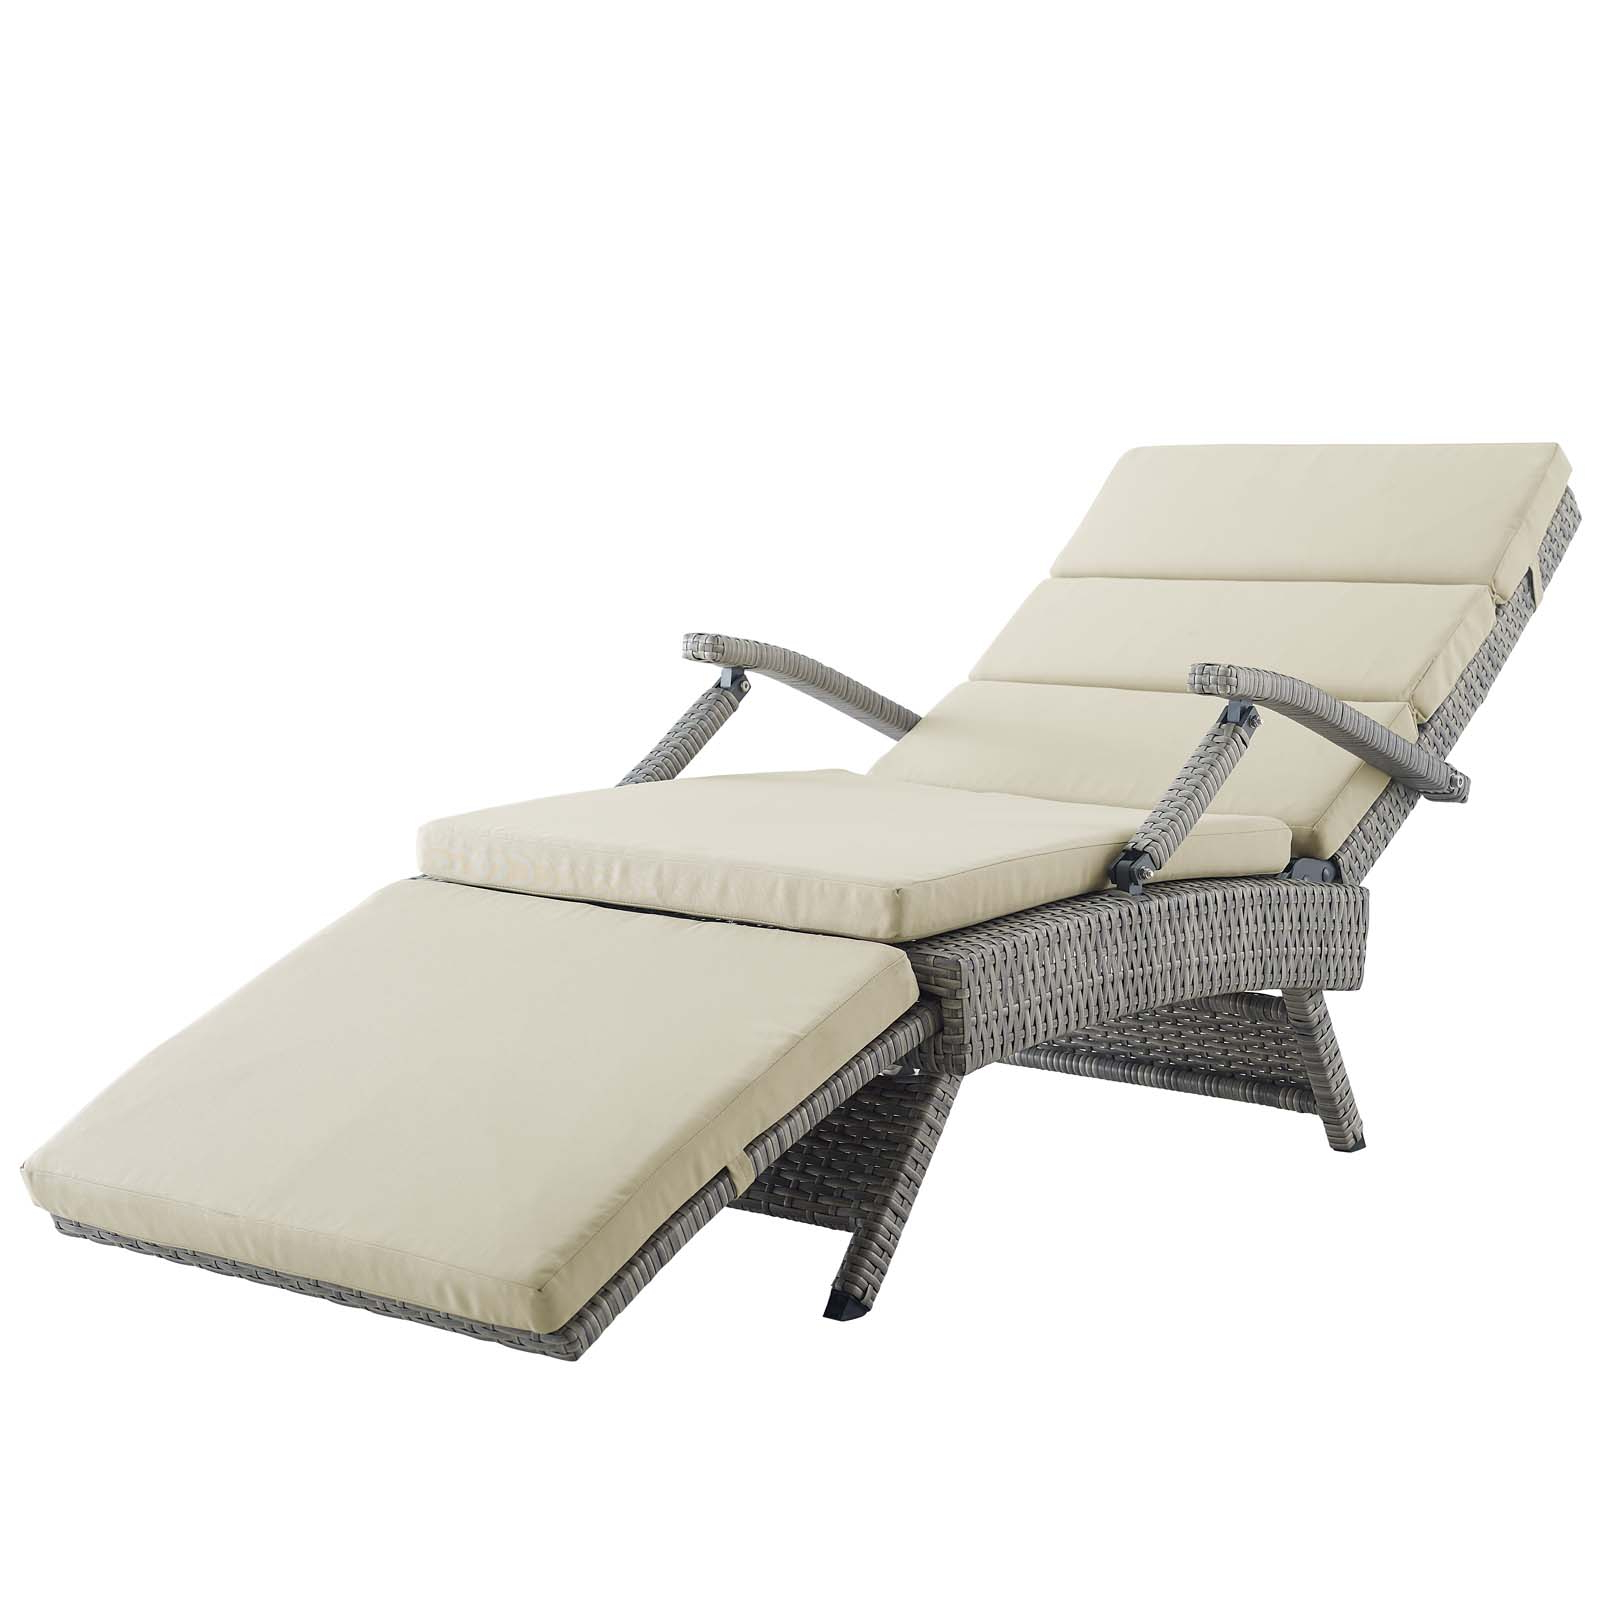 Well Known Glimpse Outdoor Patio Mesh Chaise Lounge Chairs Within Lounge Chairs (View 11 of 25)